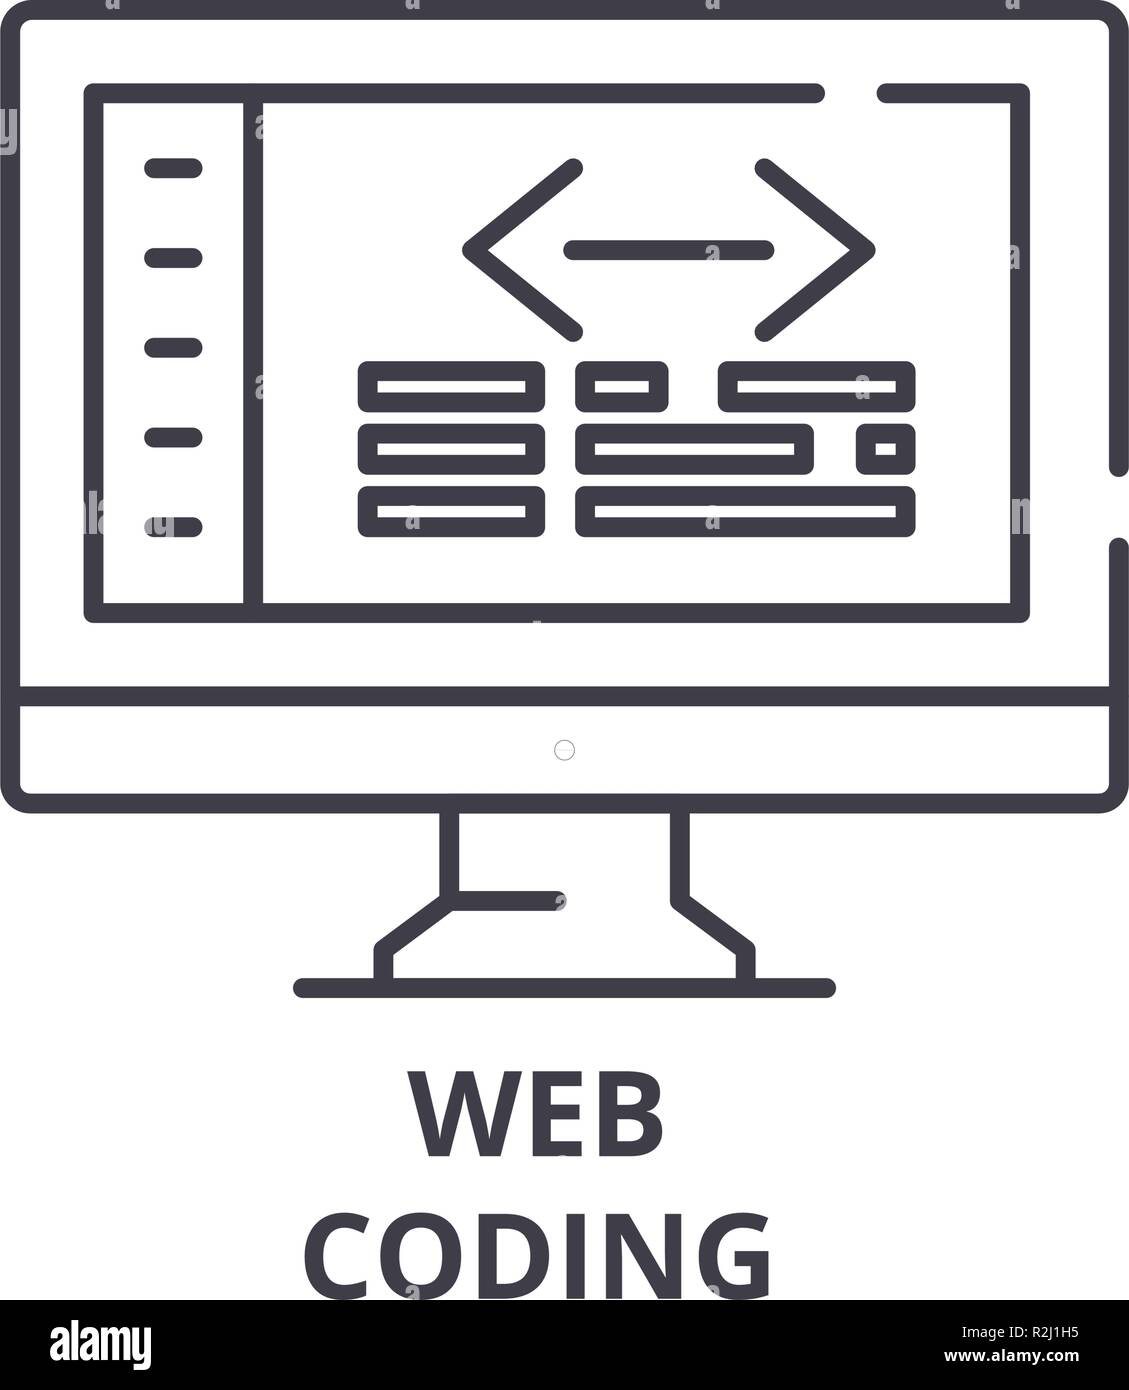 Web coding line icon concept. Web coding vector linear illustration, symbol, sign - Stock Image